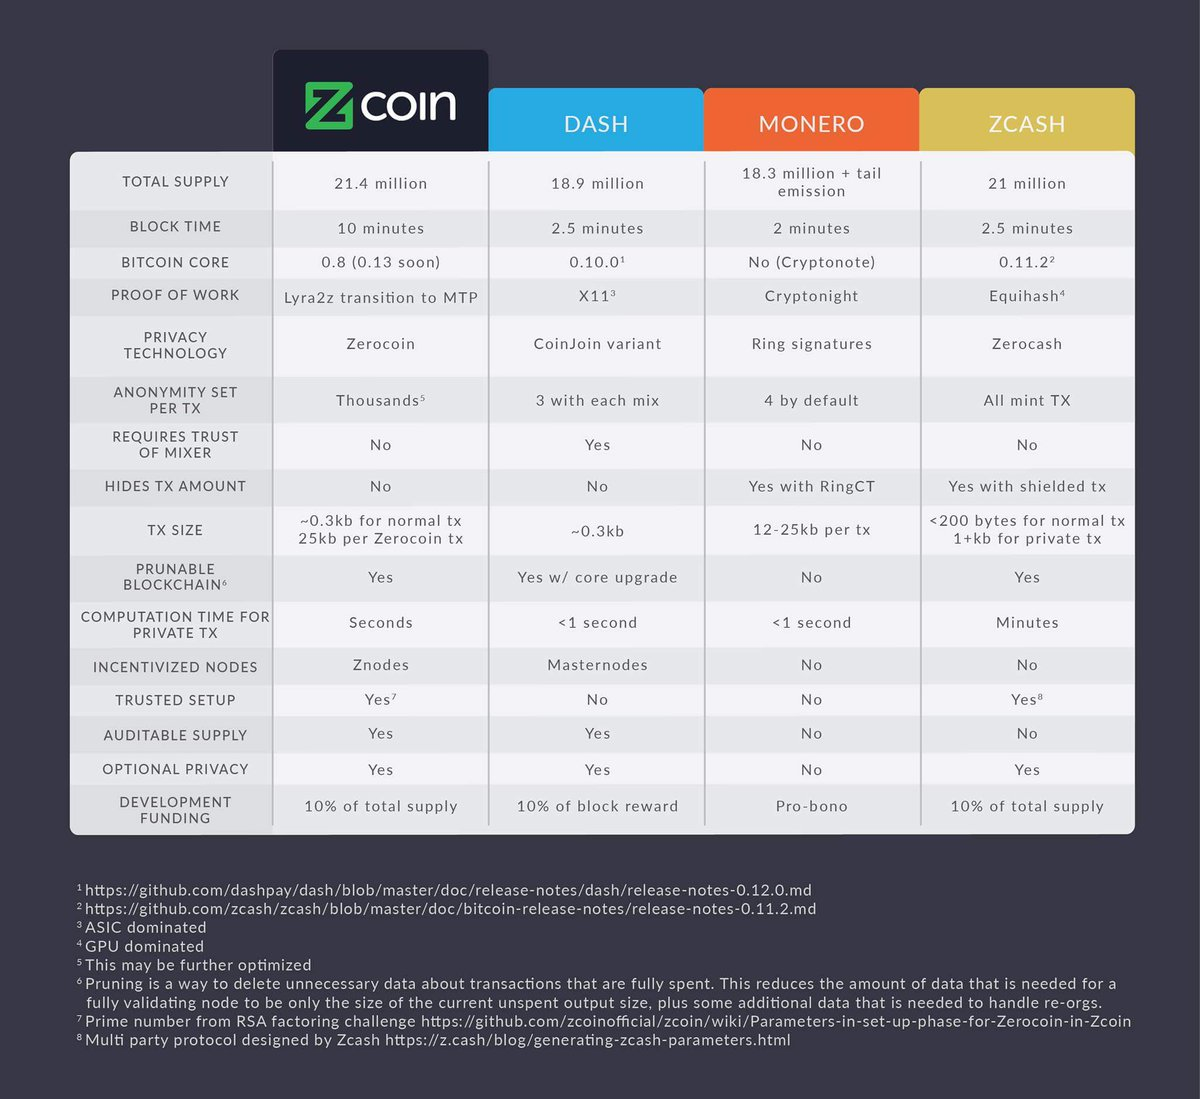 cryptocurrency coin comparison